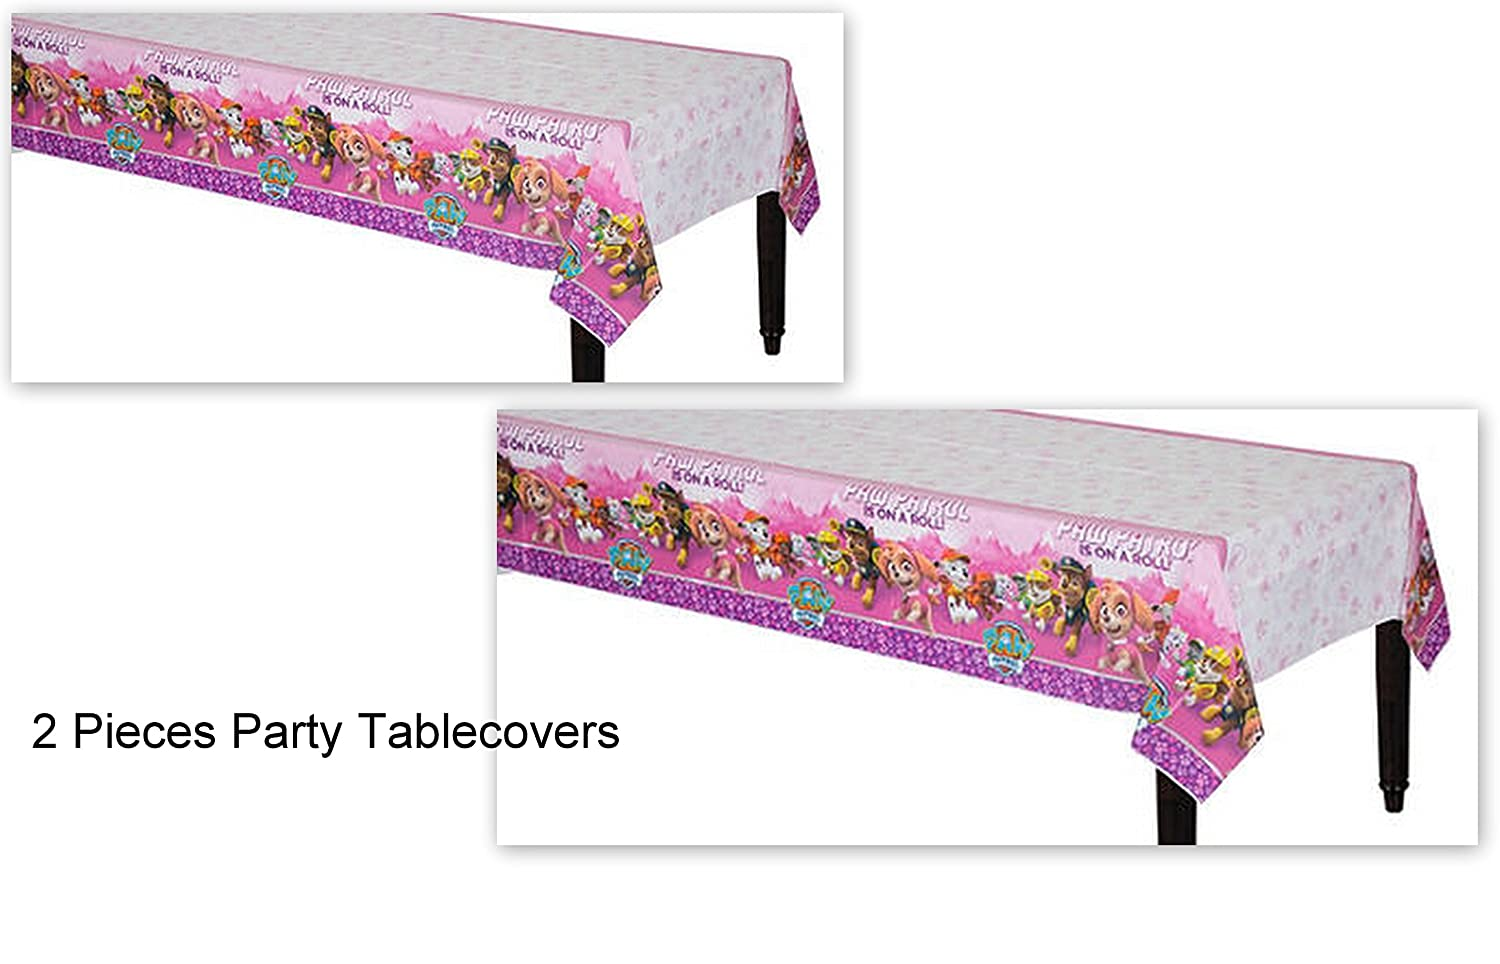 Paw Patrol Skye Girl Dog Girl Pink Decoration Party Tablecover Tablecloth Birthday - 2 PIECES Amscan